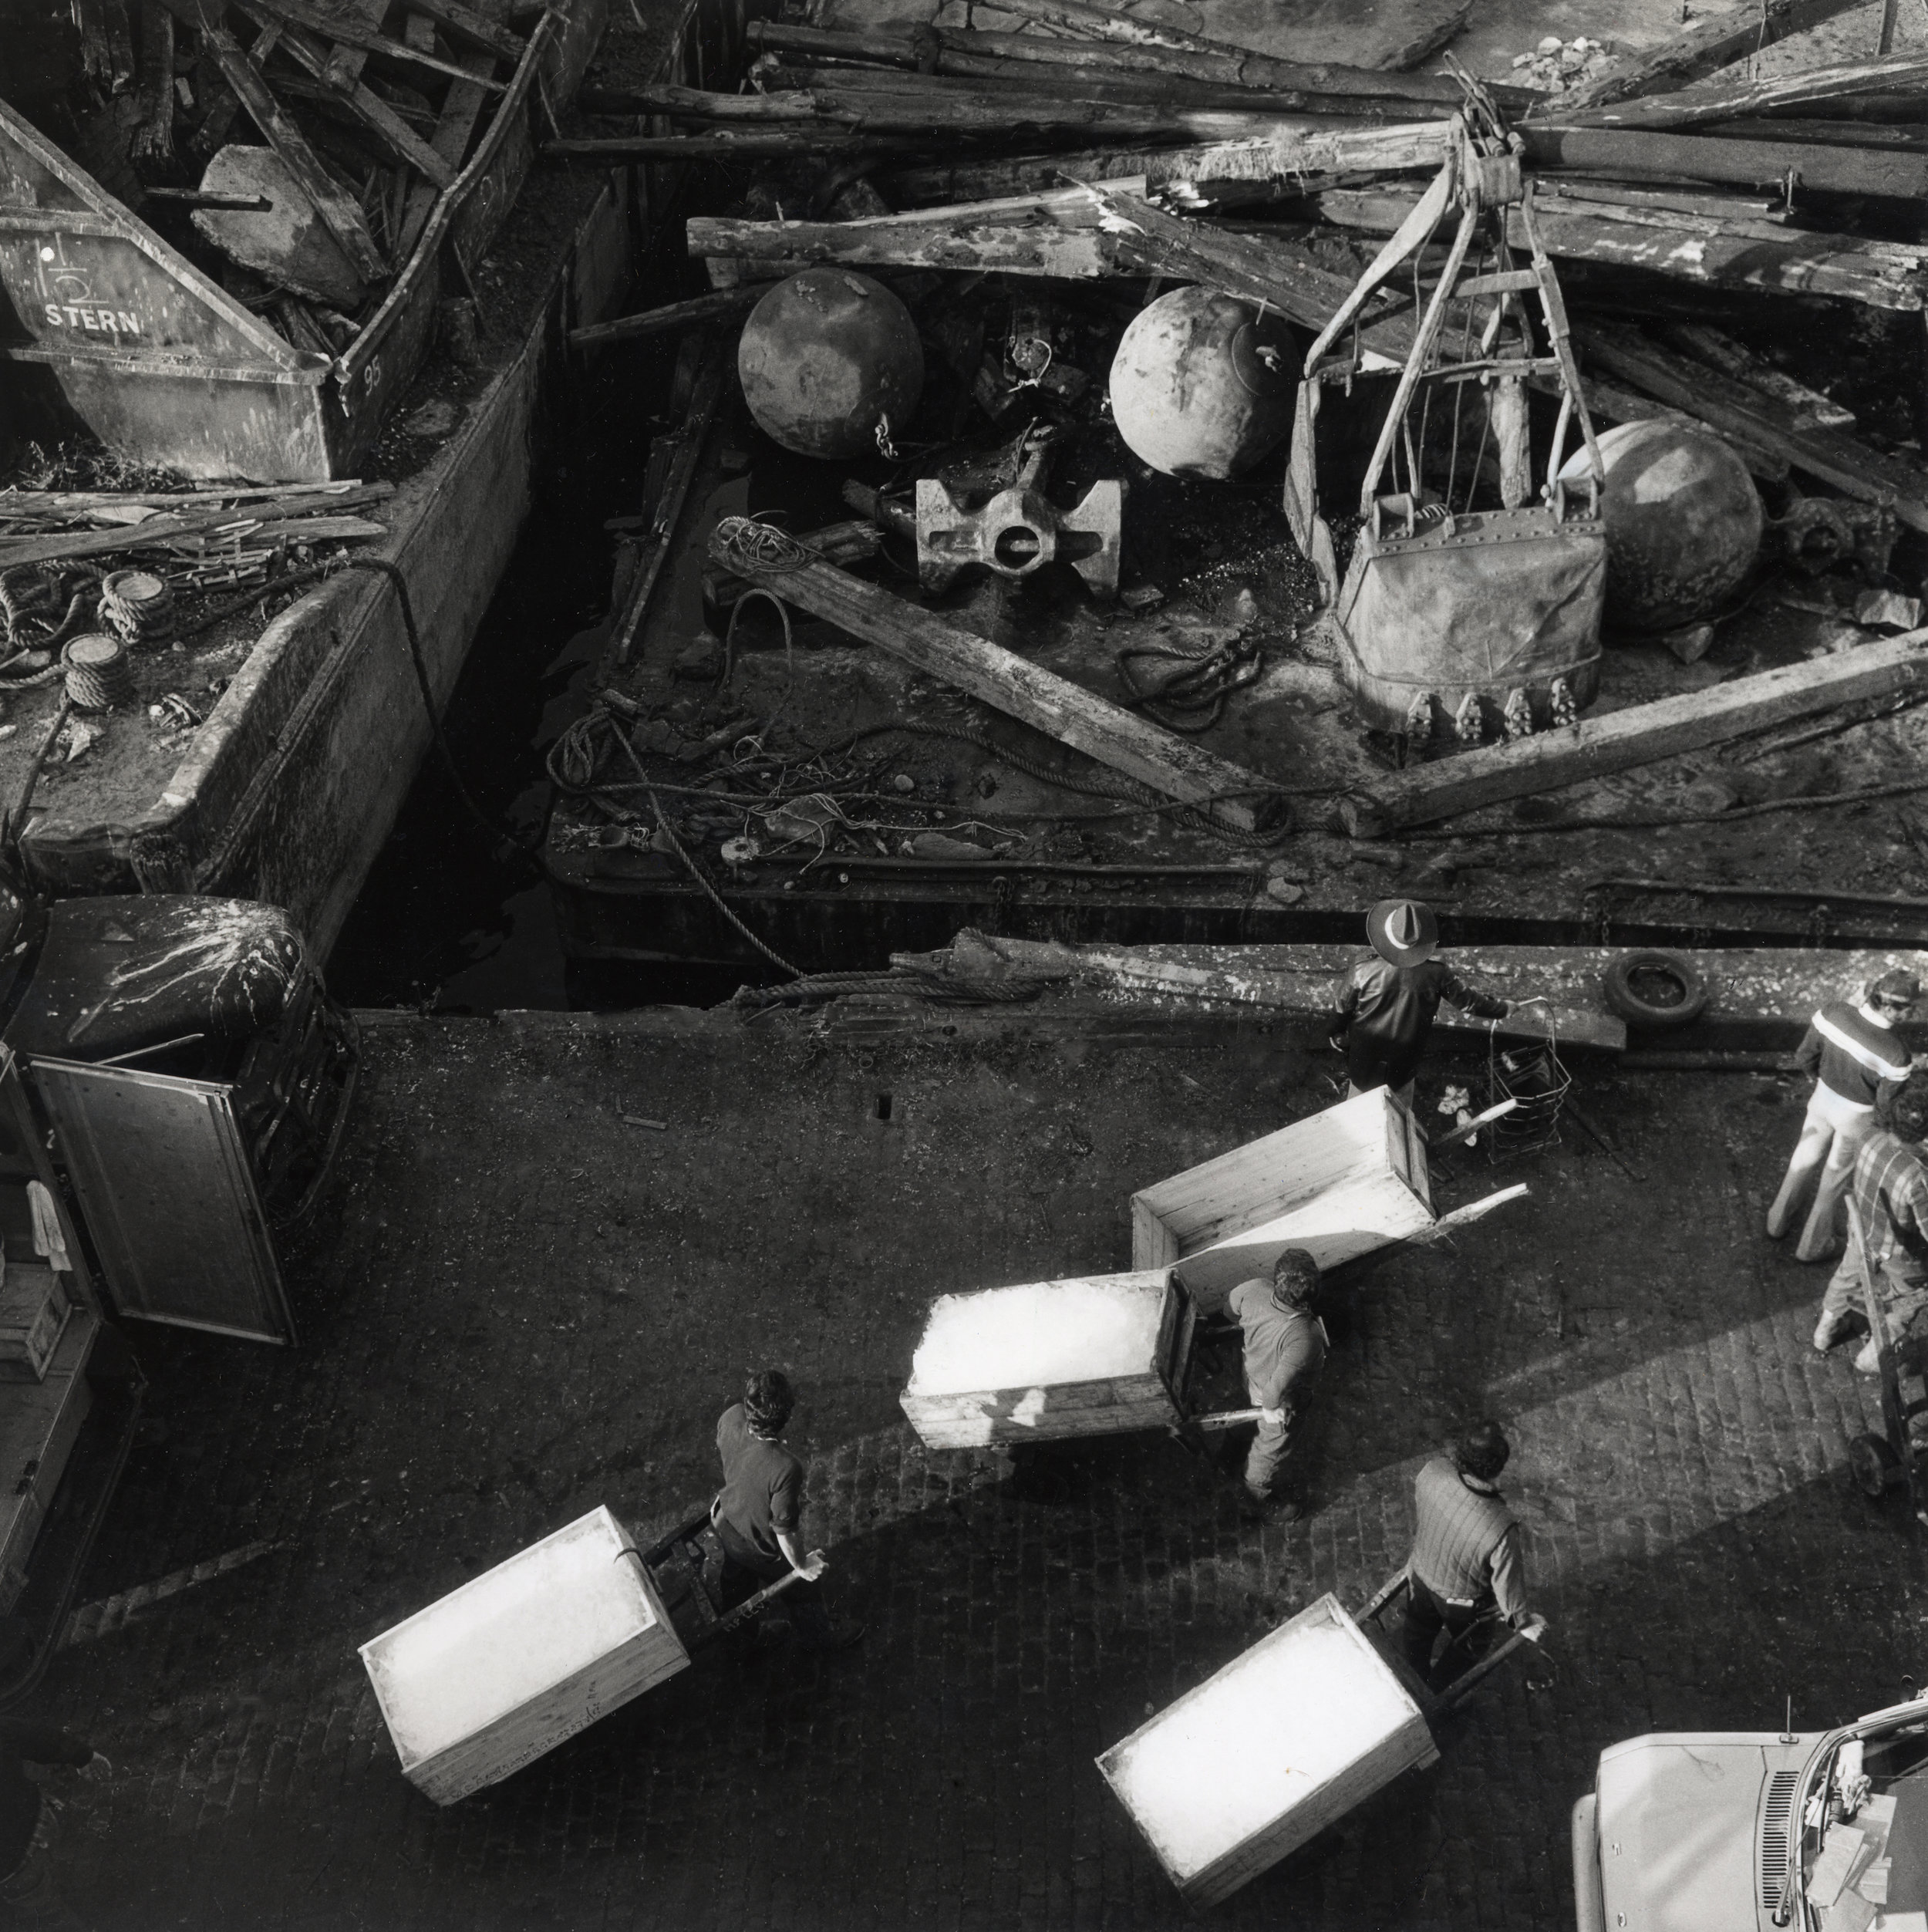 beekman dock destruction.jpg